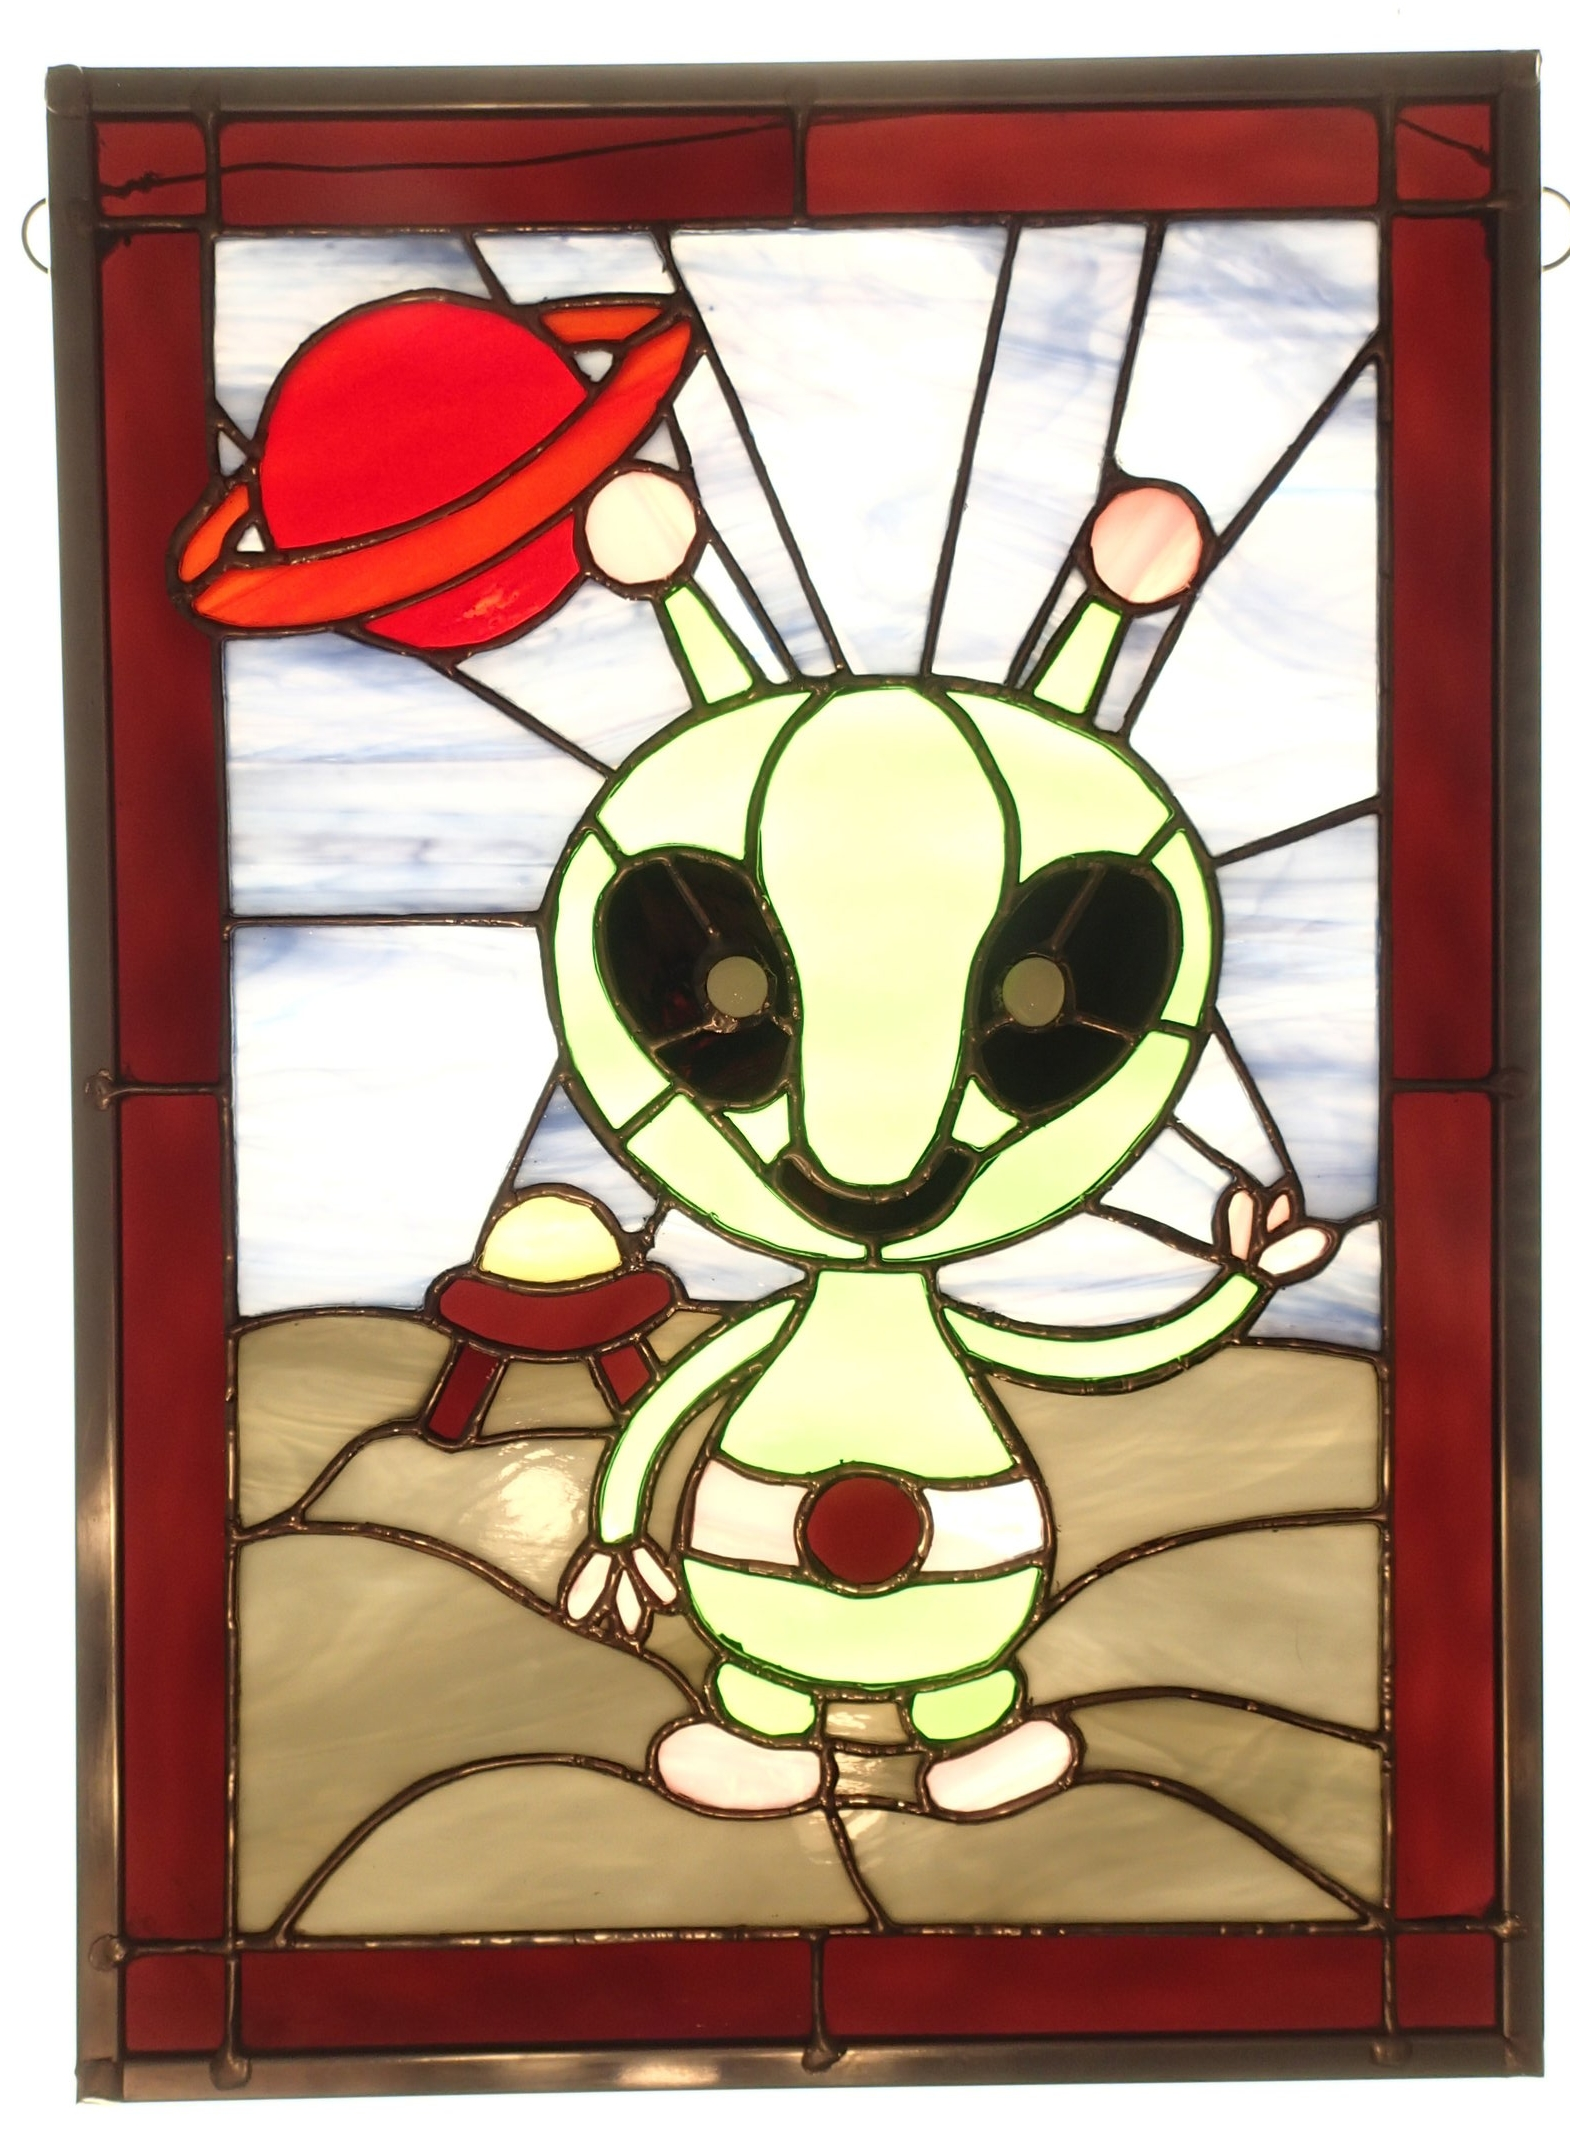 alien_stained_glass.jpg